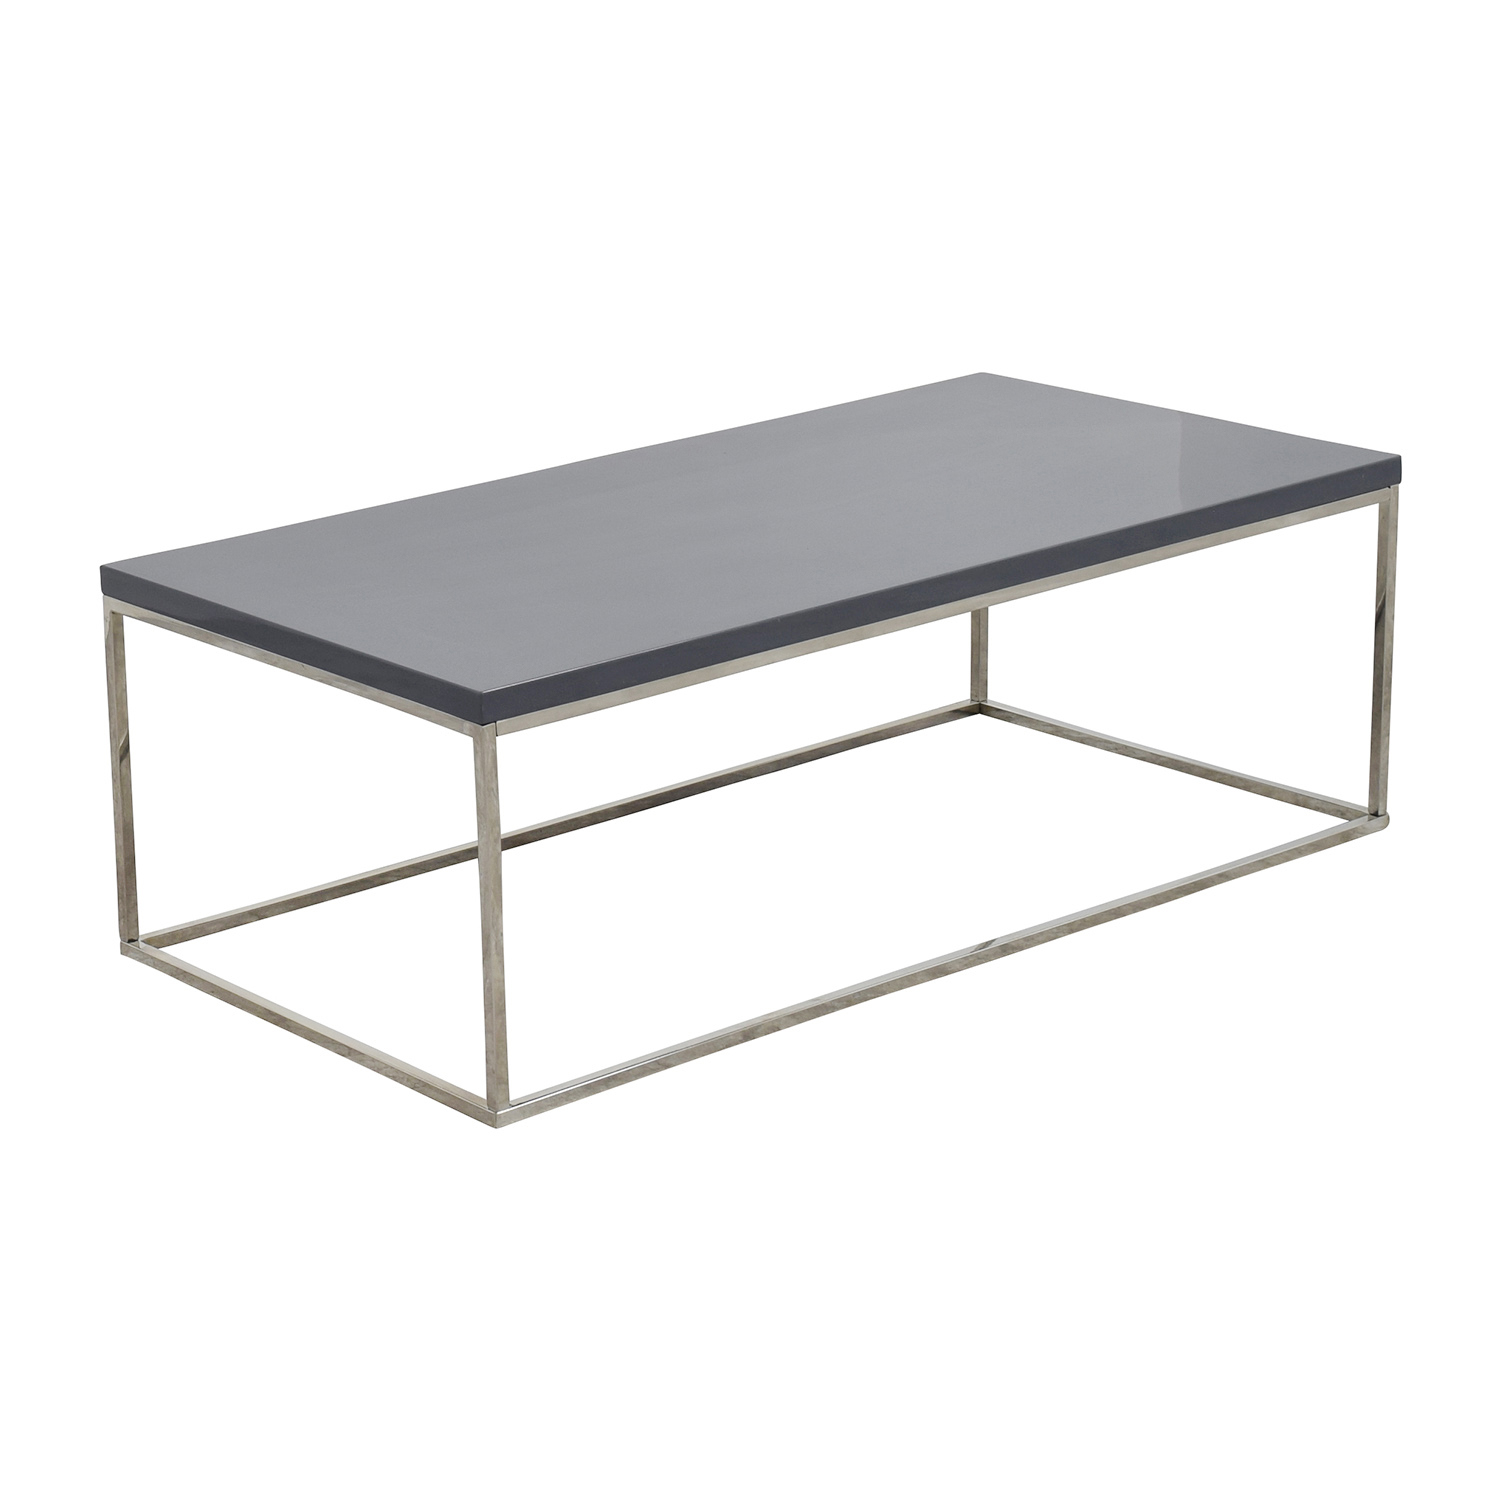 72 off inmod inmod teresa rectangular coffee table tables for In mod furniture